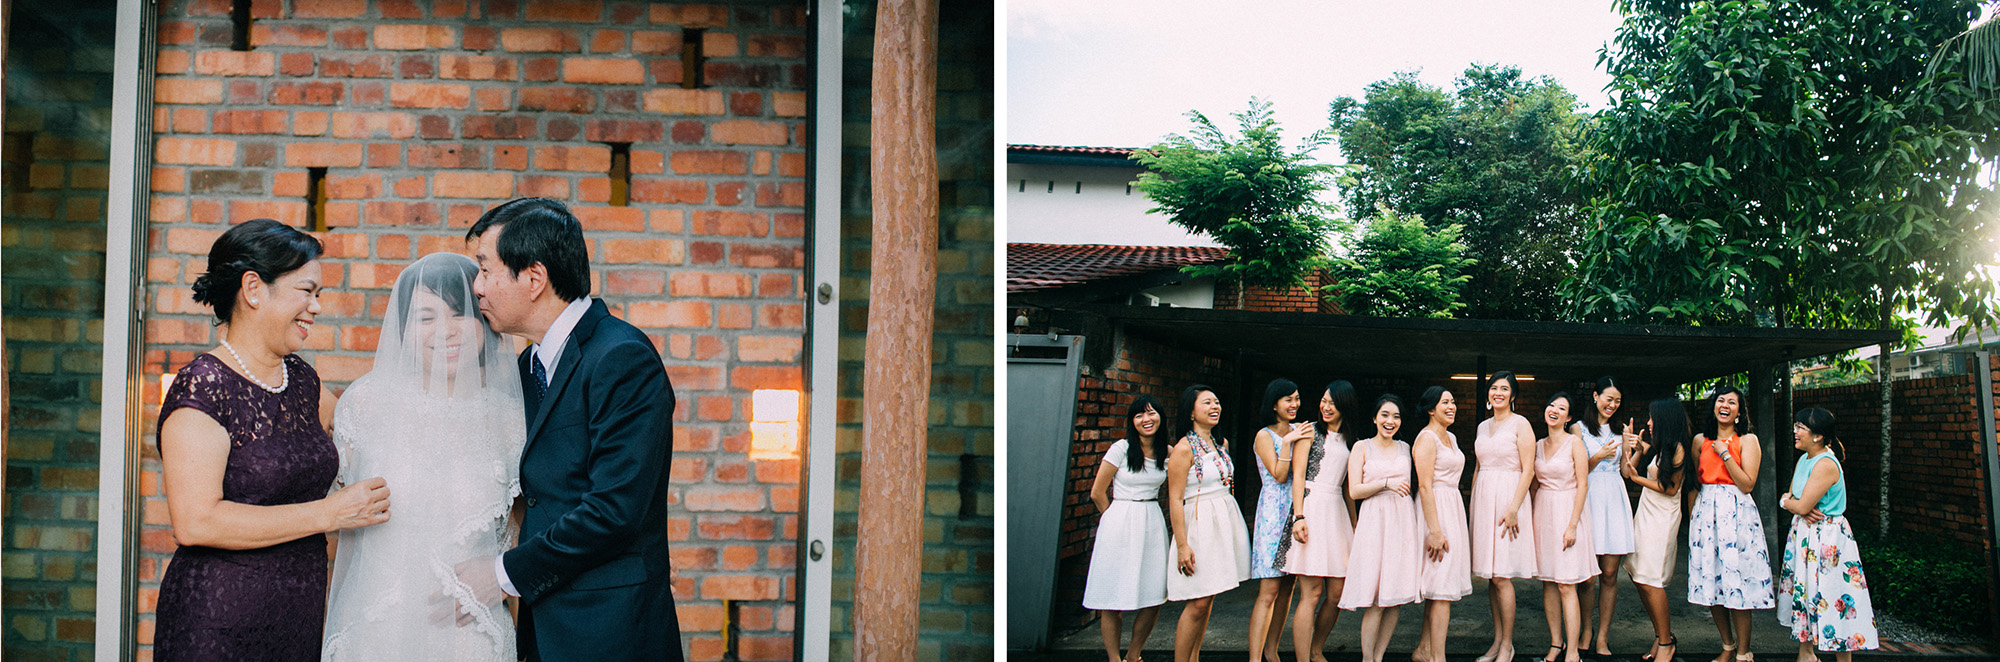 11-hellojanelee-sam grace-malaysia-wedding-day